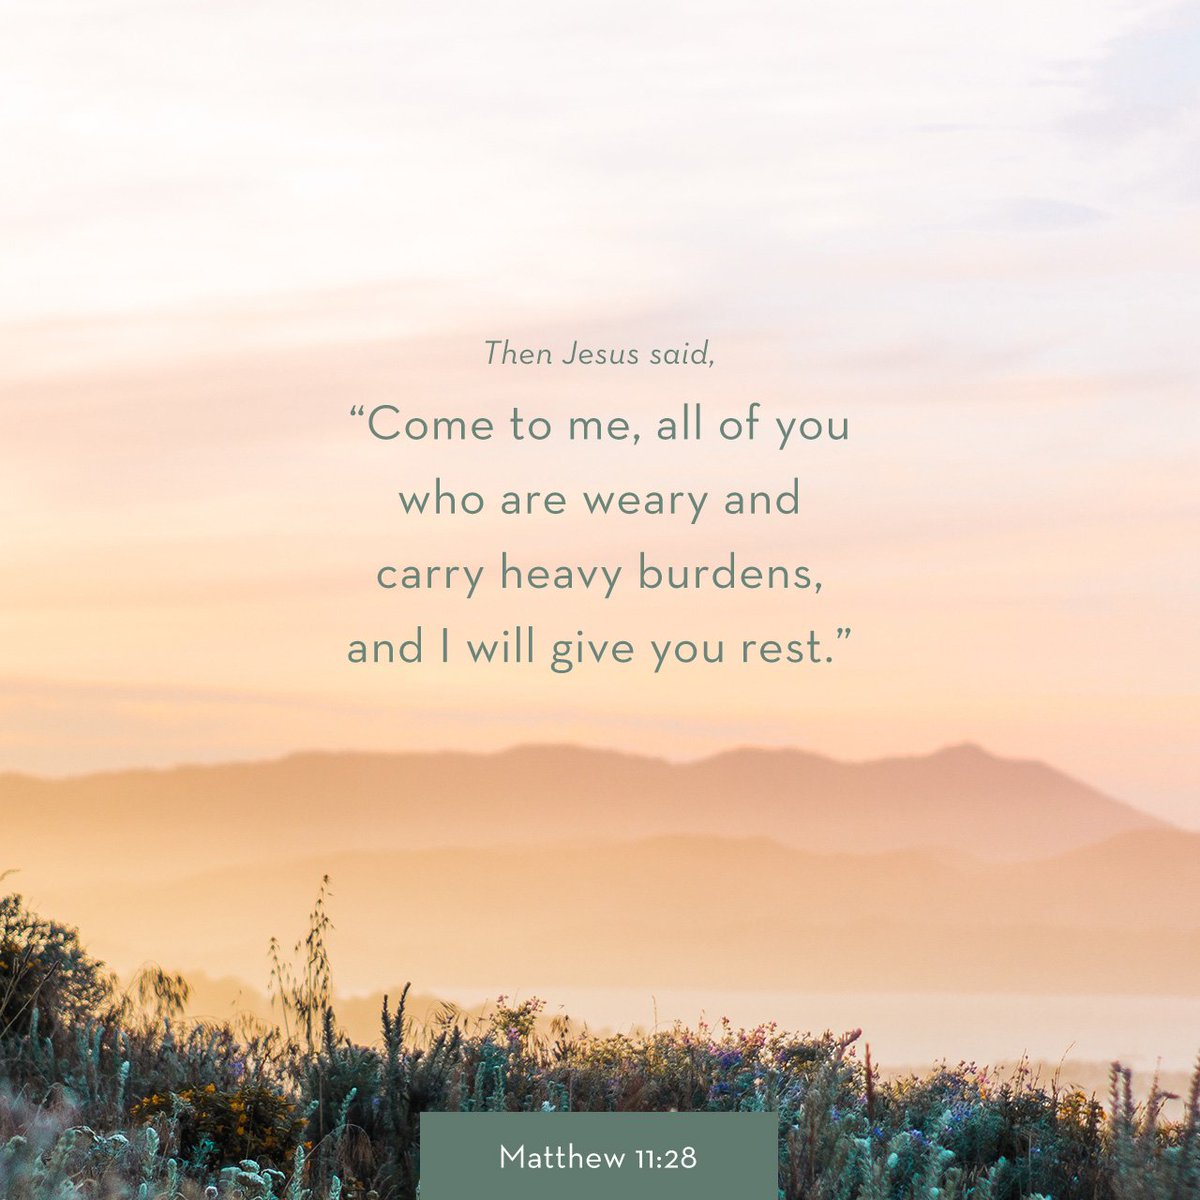 """Then Jesus said,""""Come to me, all of you who are weary and carry heavy burdens, and I will… https://t.co/jxOIghA7sm https://t.co/X459VDLS8S"""